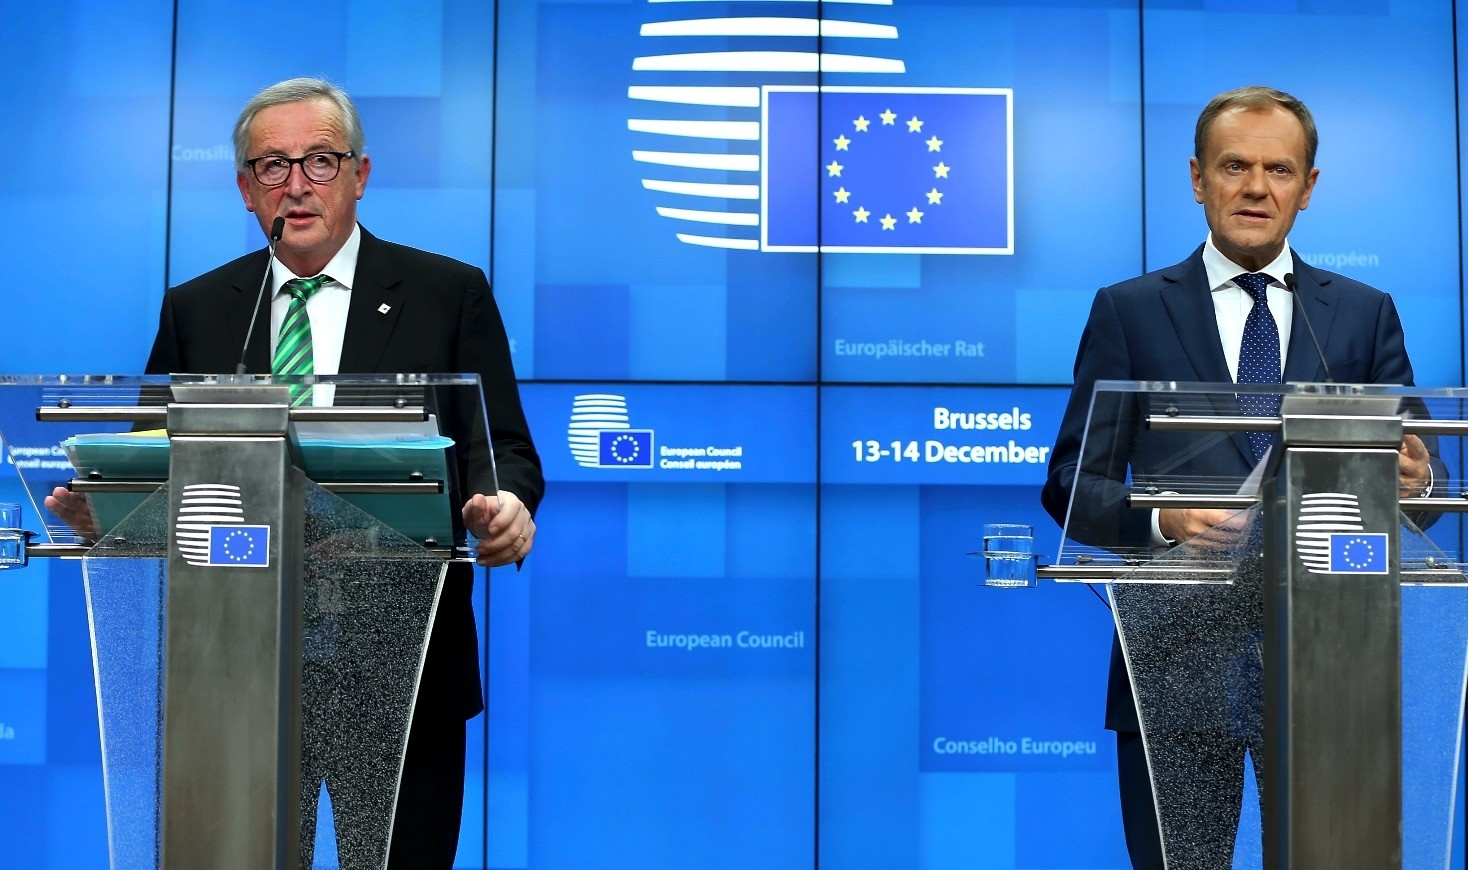 EU Commission President Jean-Claude Juncker (L) and European Council President Donald Tusk (R)